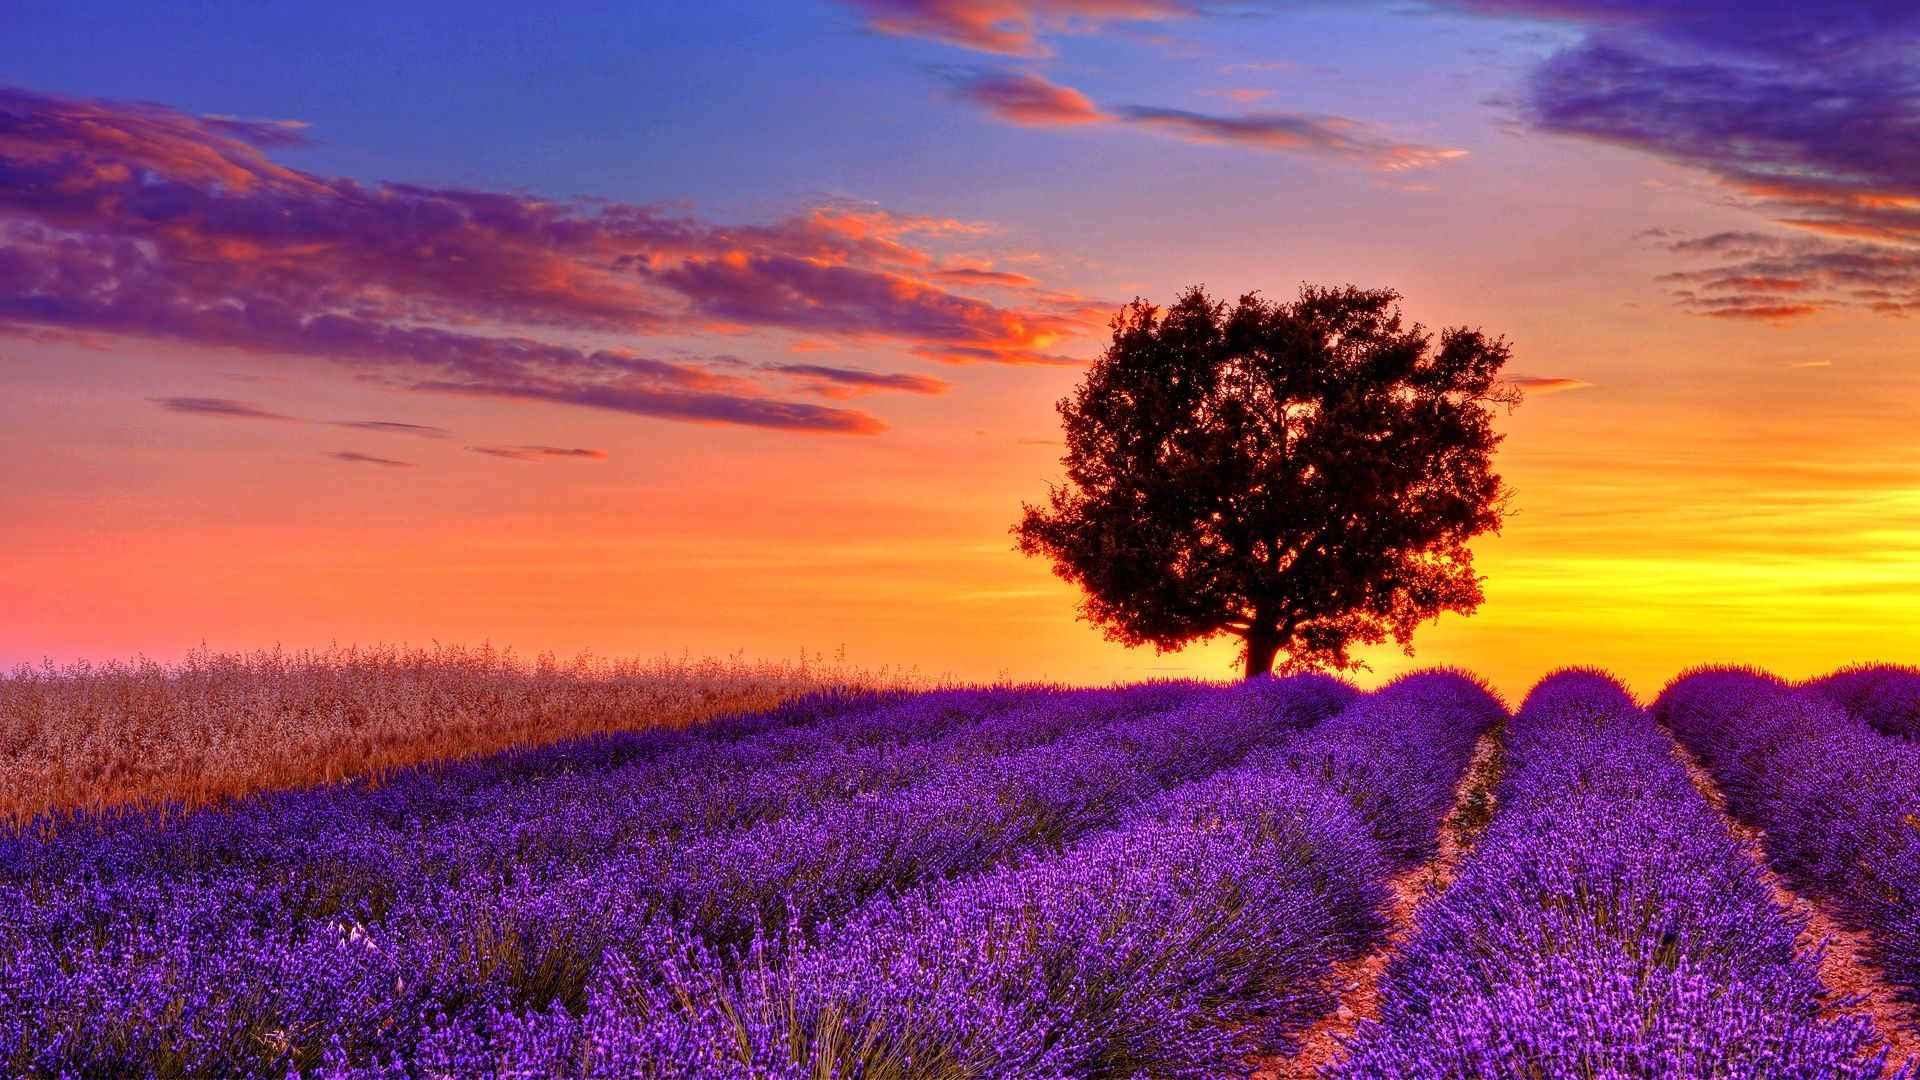 wallpapers download outstanding hd wallpapers of sunset field 1920x1080